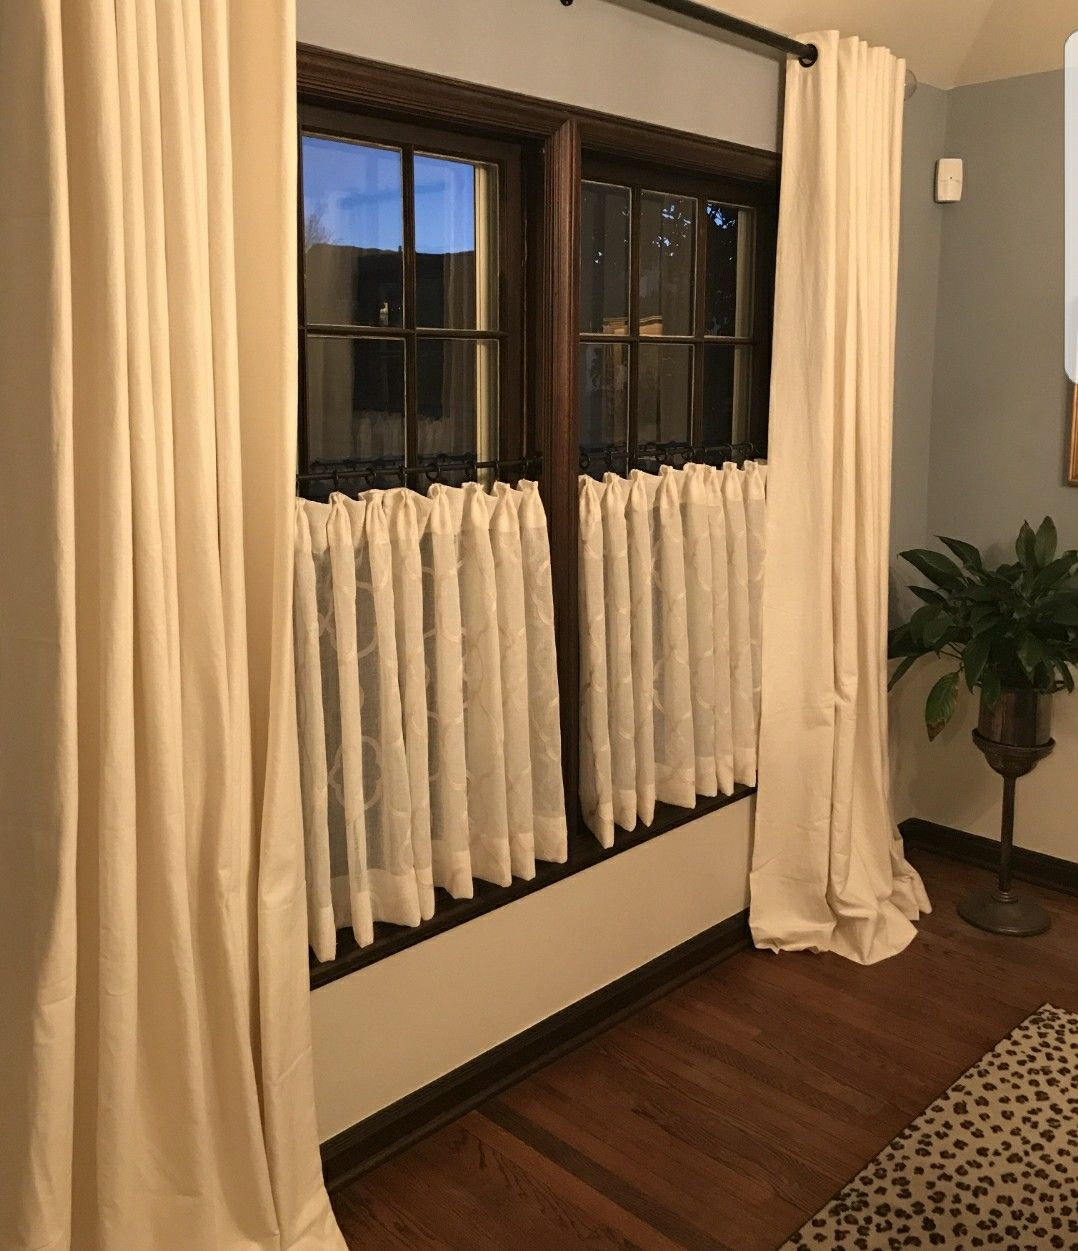 Cafe Iron Rod Small Space 1 2 Rod Room Divider Drapery Rod